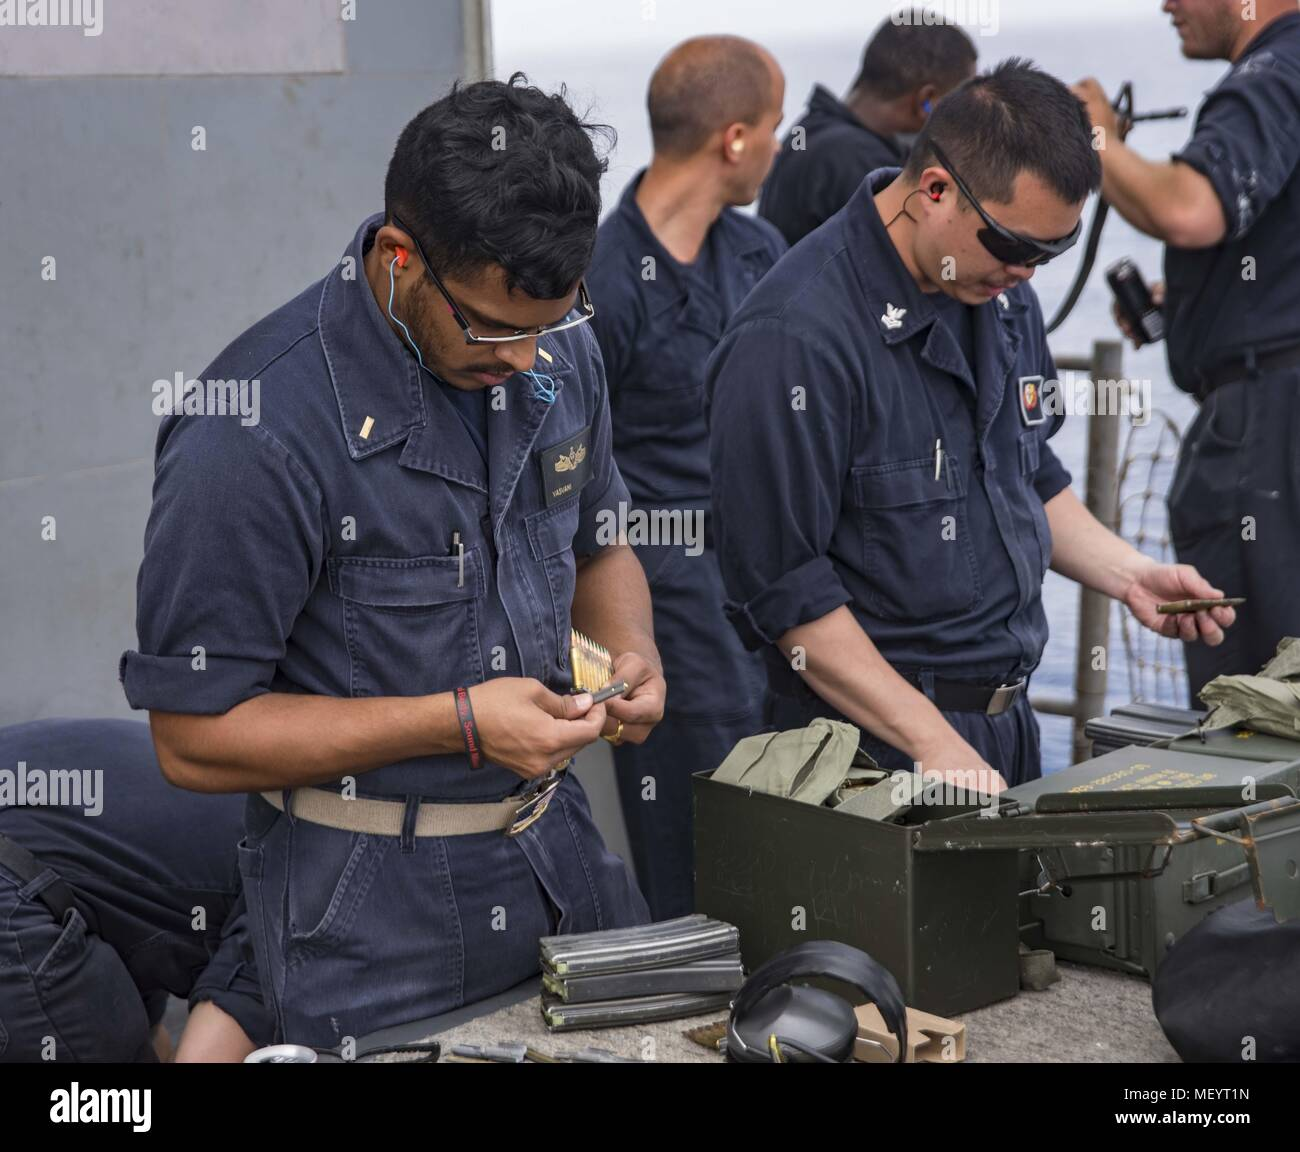 180418-N-DO281-0281 MEDITERRANEAN SEA (April 18, 2018) Ensign Nikunj Vasvani, left, and Fire Controlman 2nd Class Michaeel Lau, right, load magazines during a live-fire exercise aboard the guided-missile cruiser USS Monterey (CG 61), April 18, 2018. Monterey, home-ported in Norfolk, Virginia, is conducting operations in the U.S. 6th Fleet area of operations in support of U.S. national security interest in Europe. (U.S. Navy photo by Mass Communication Specialist Seaman Trey Fowler). () Stock Photo